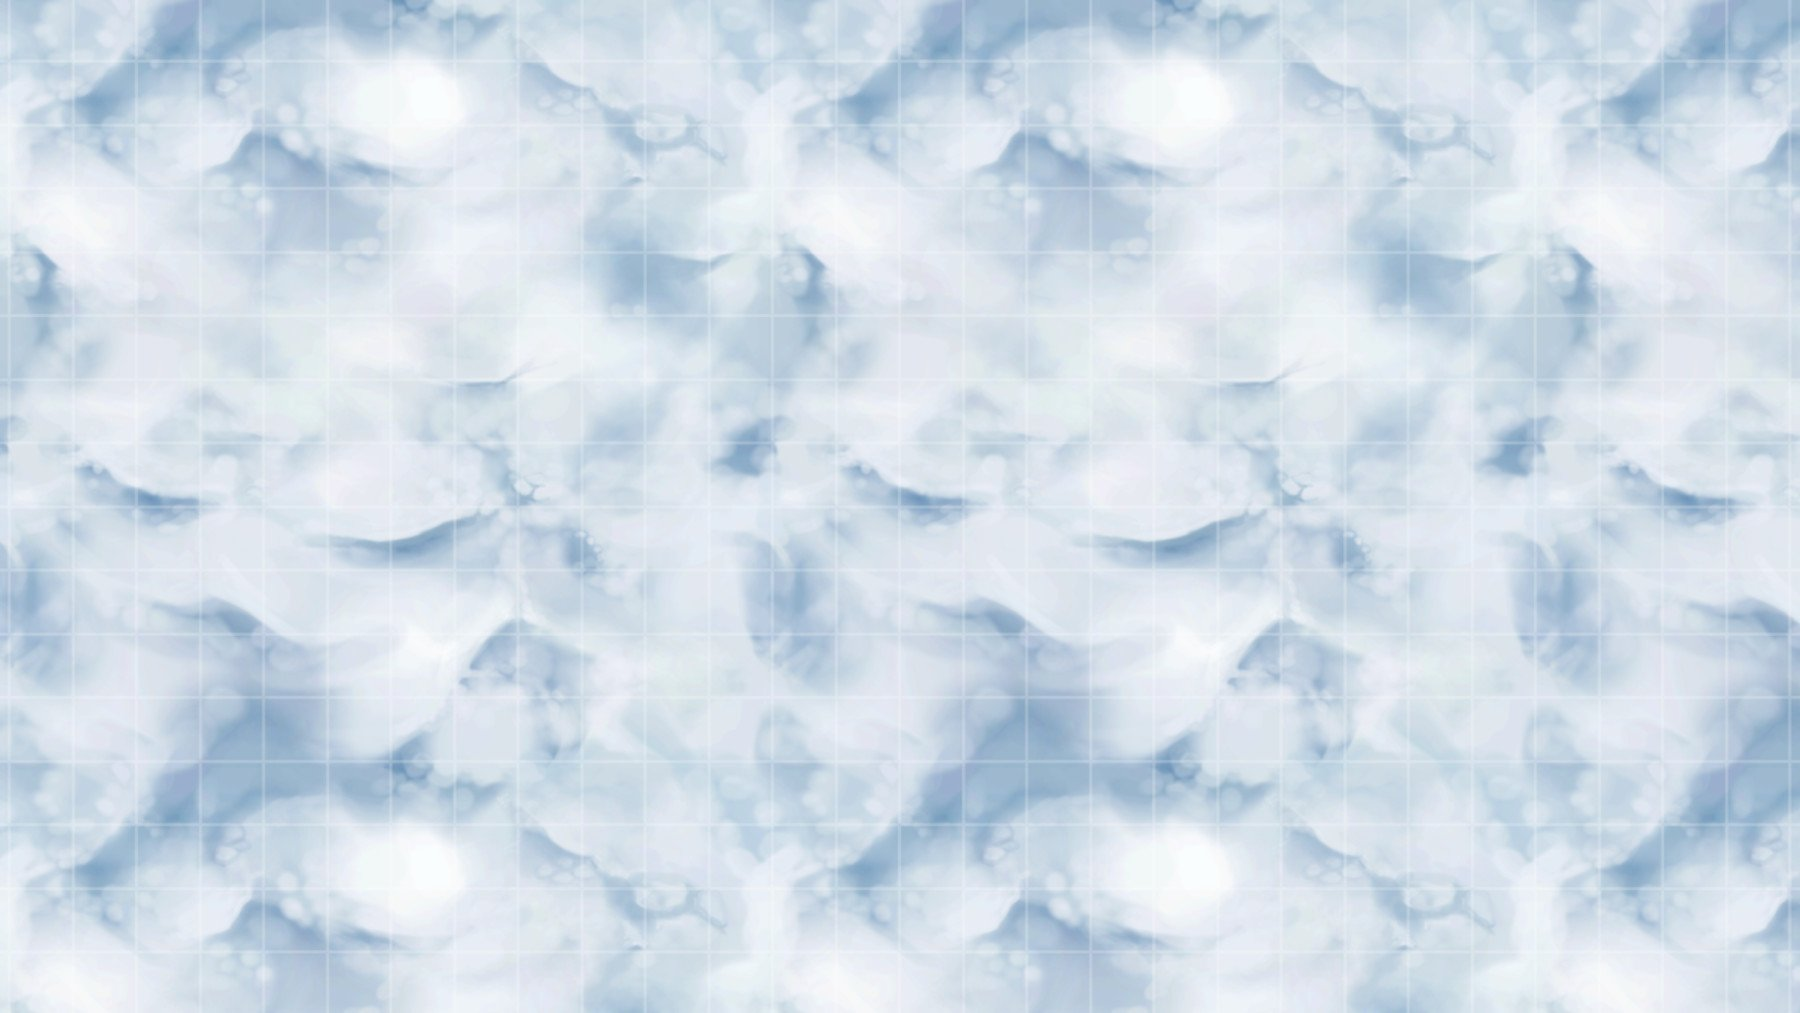 Artstation Hand Painted Snow Texture Game Assets